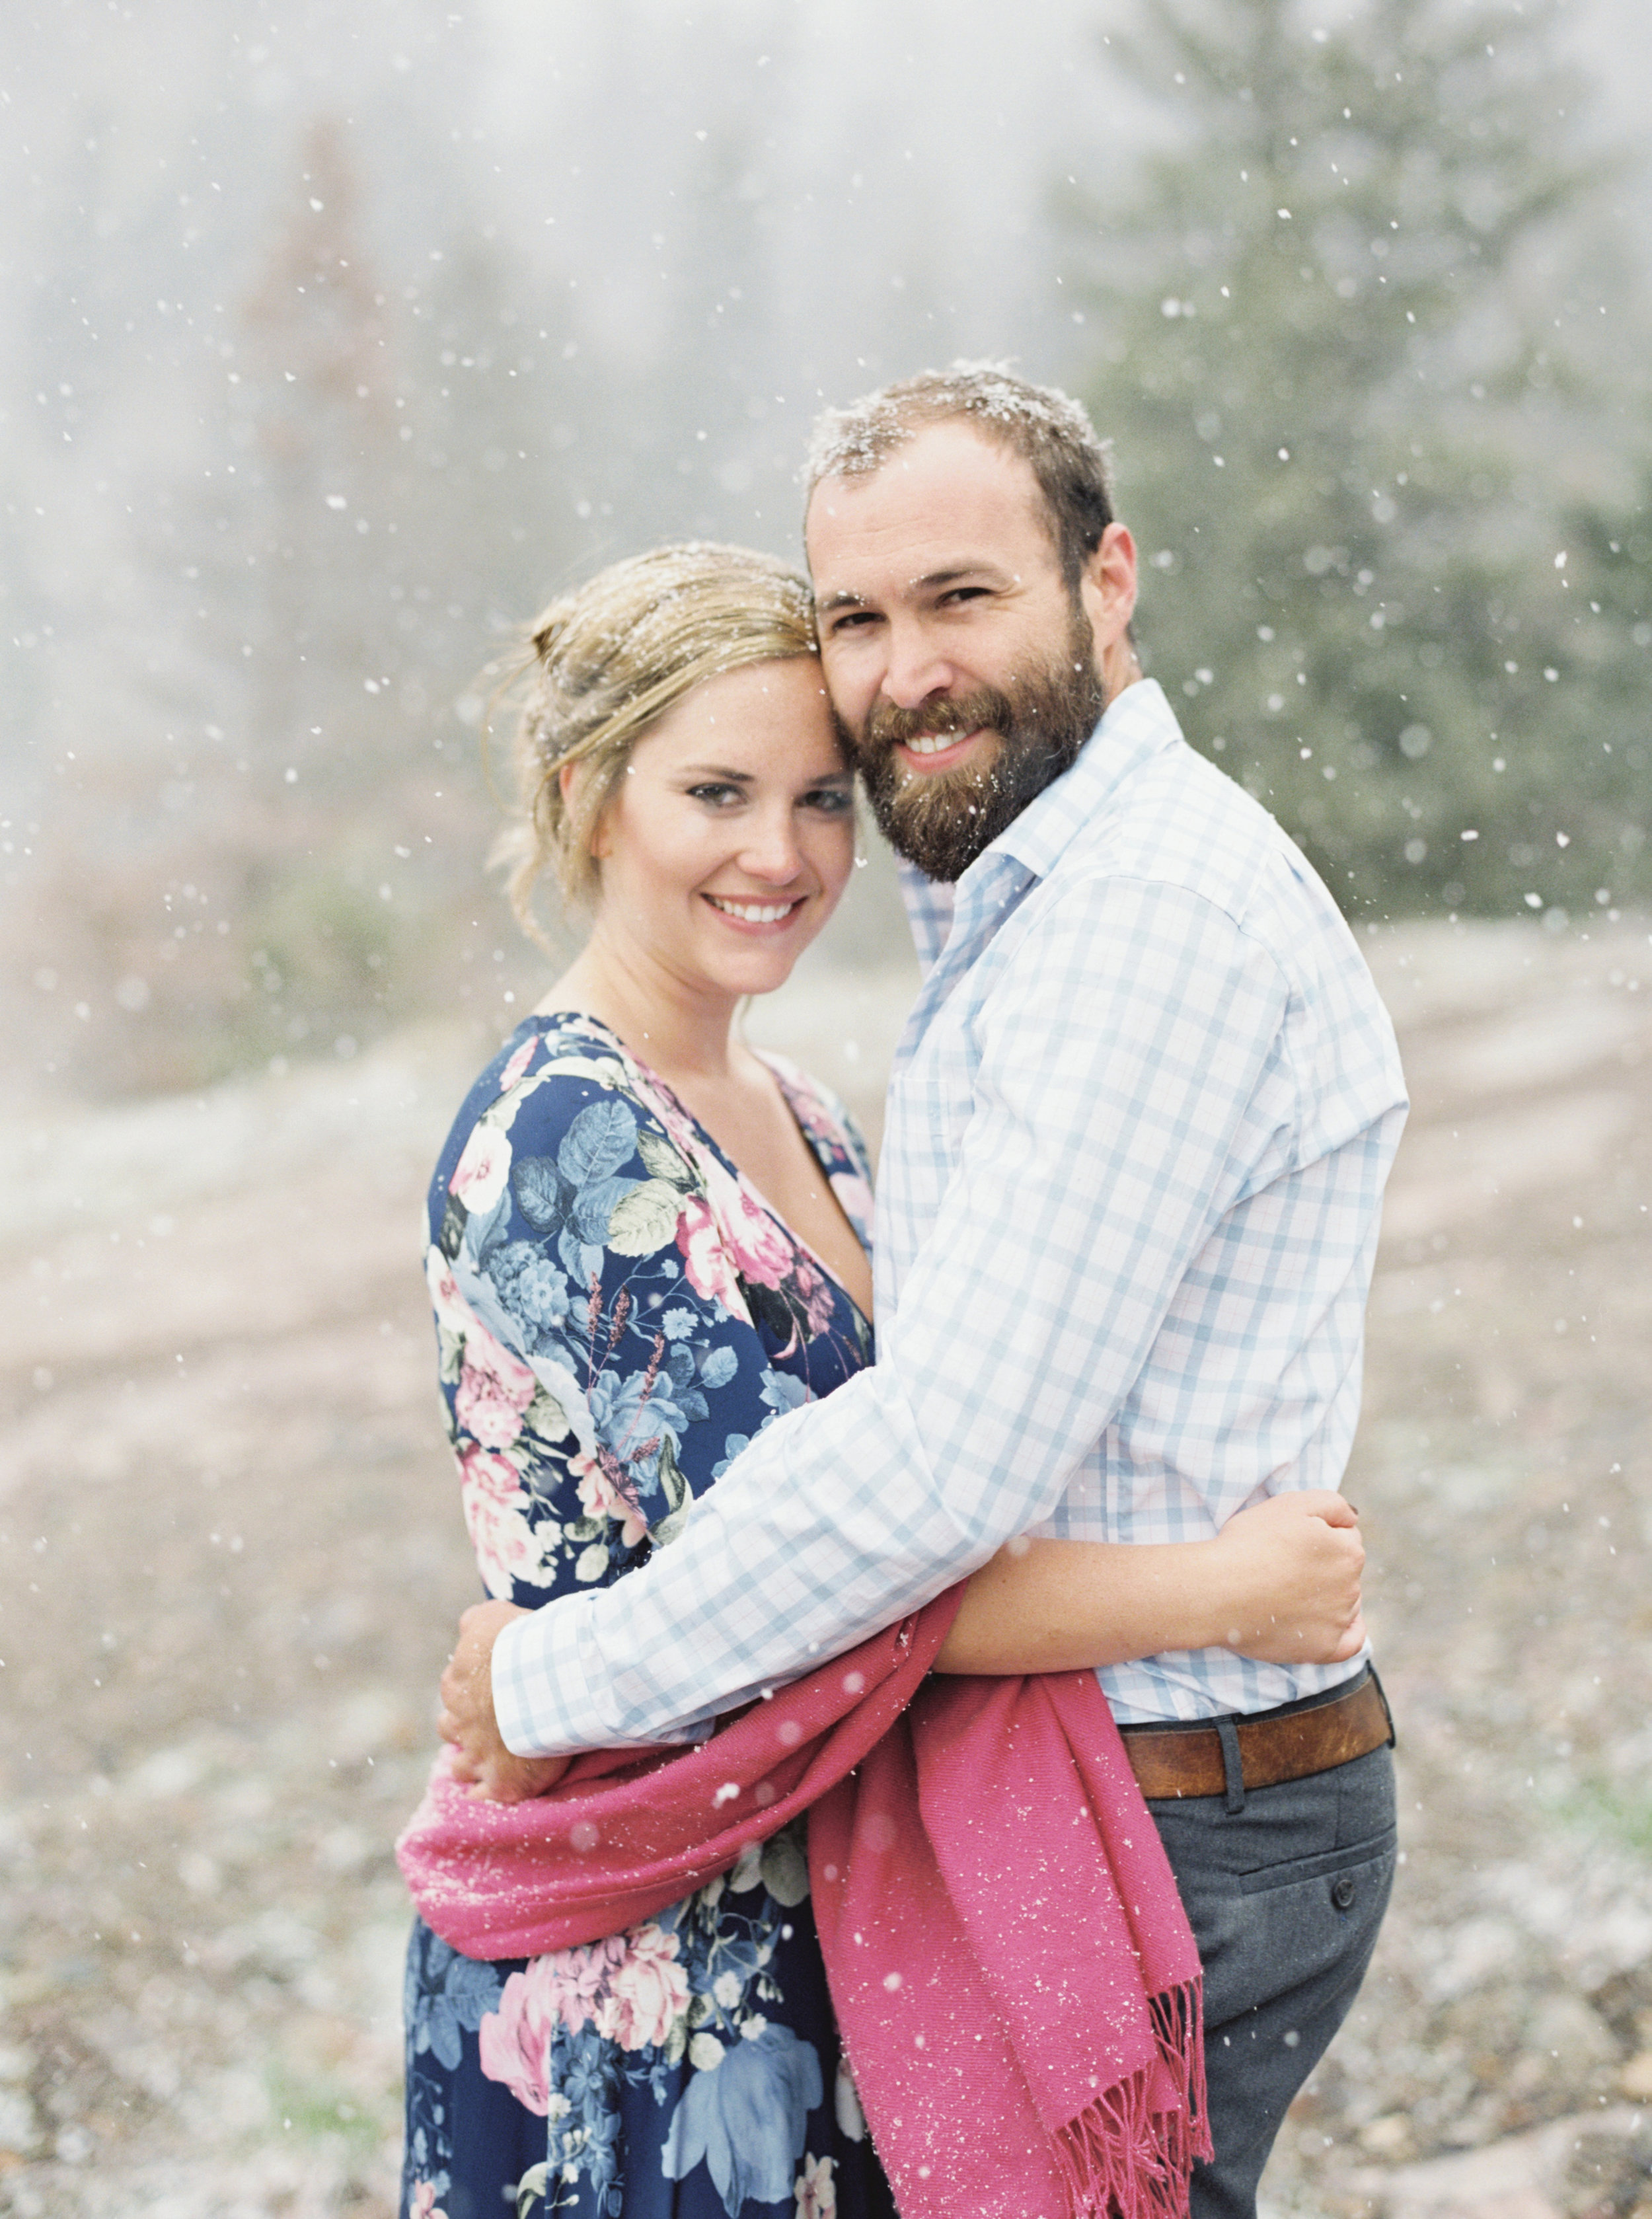 Snowy engagement photos in Colorado, by Dallas destination wedding photographer Tracy Enoch